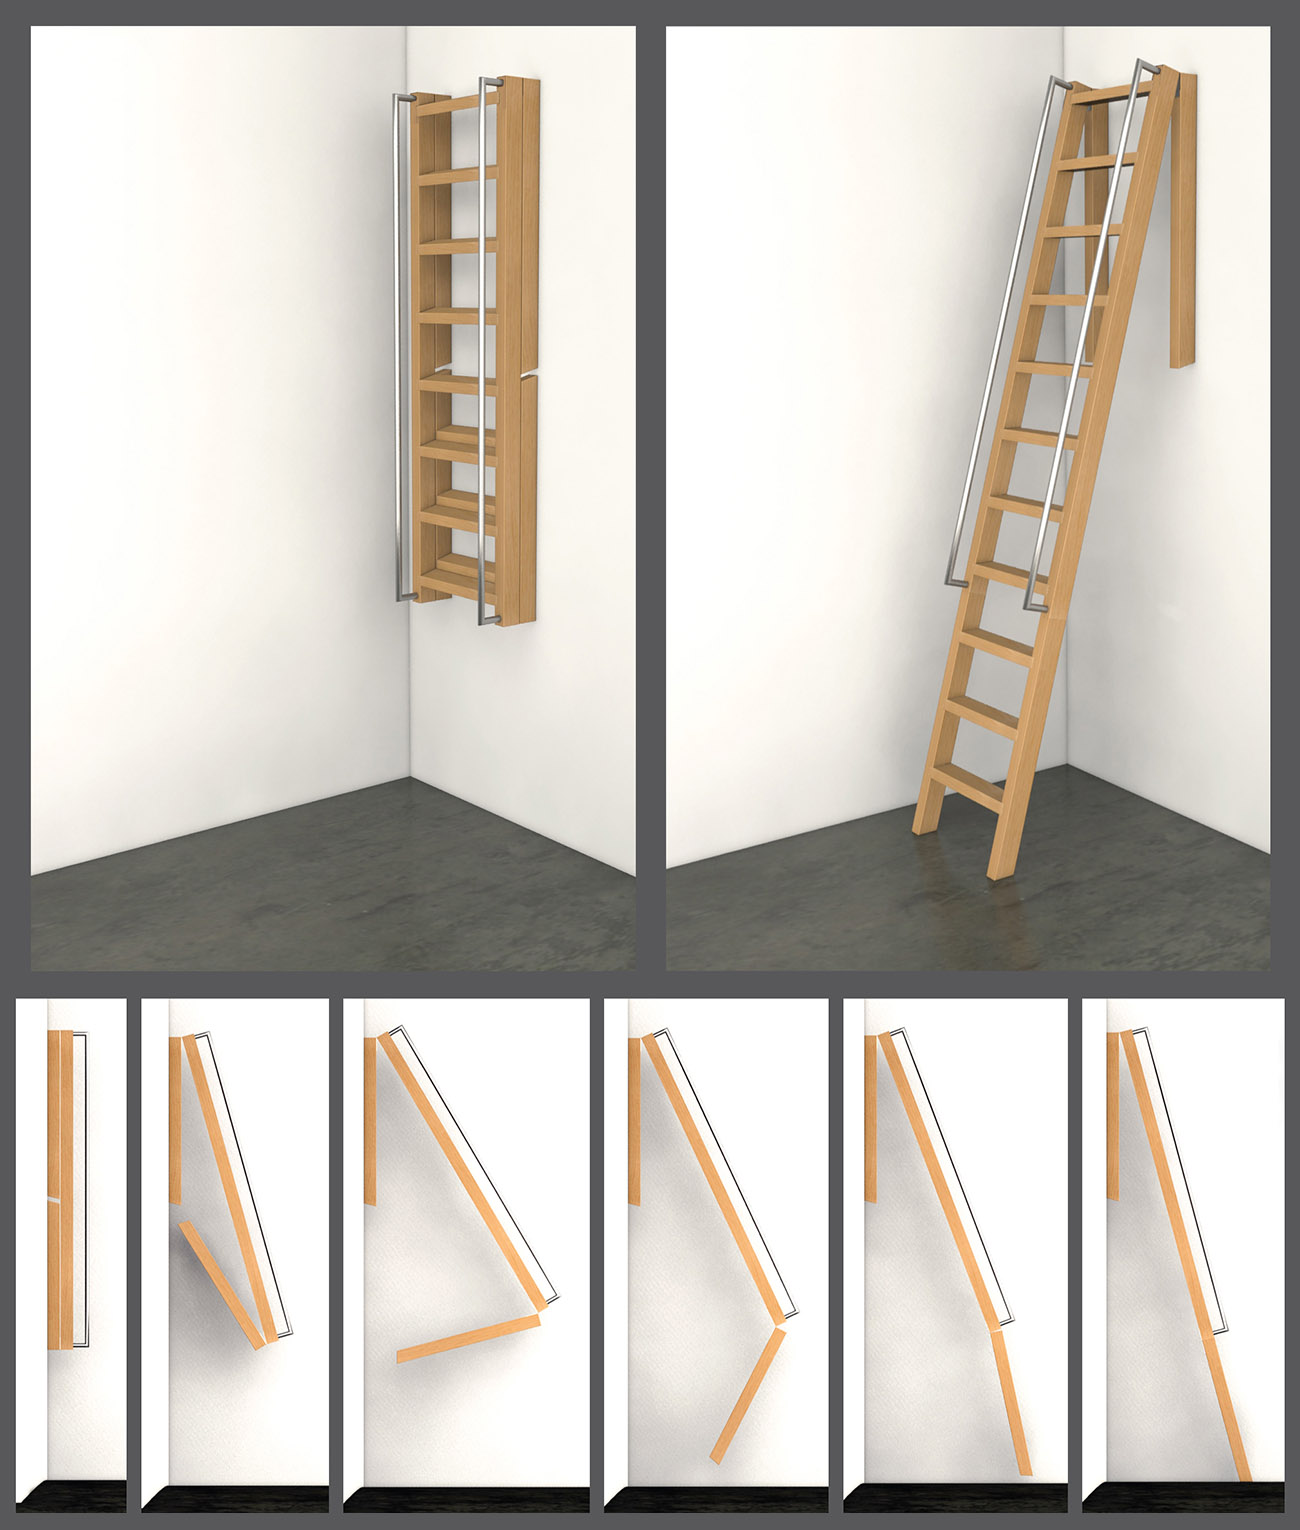 Space Saving Roof Access Ladder Design News Studio Simic